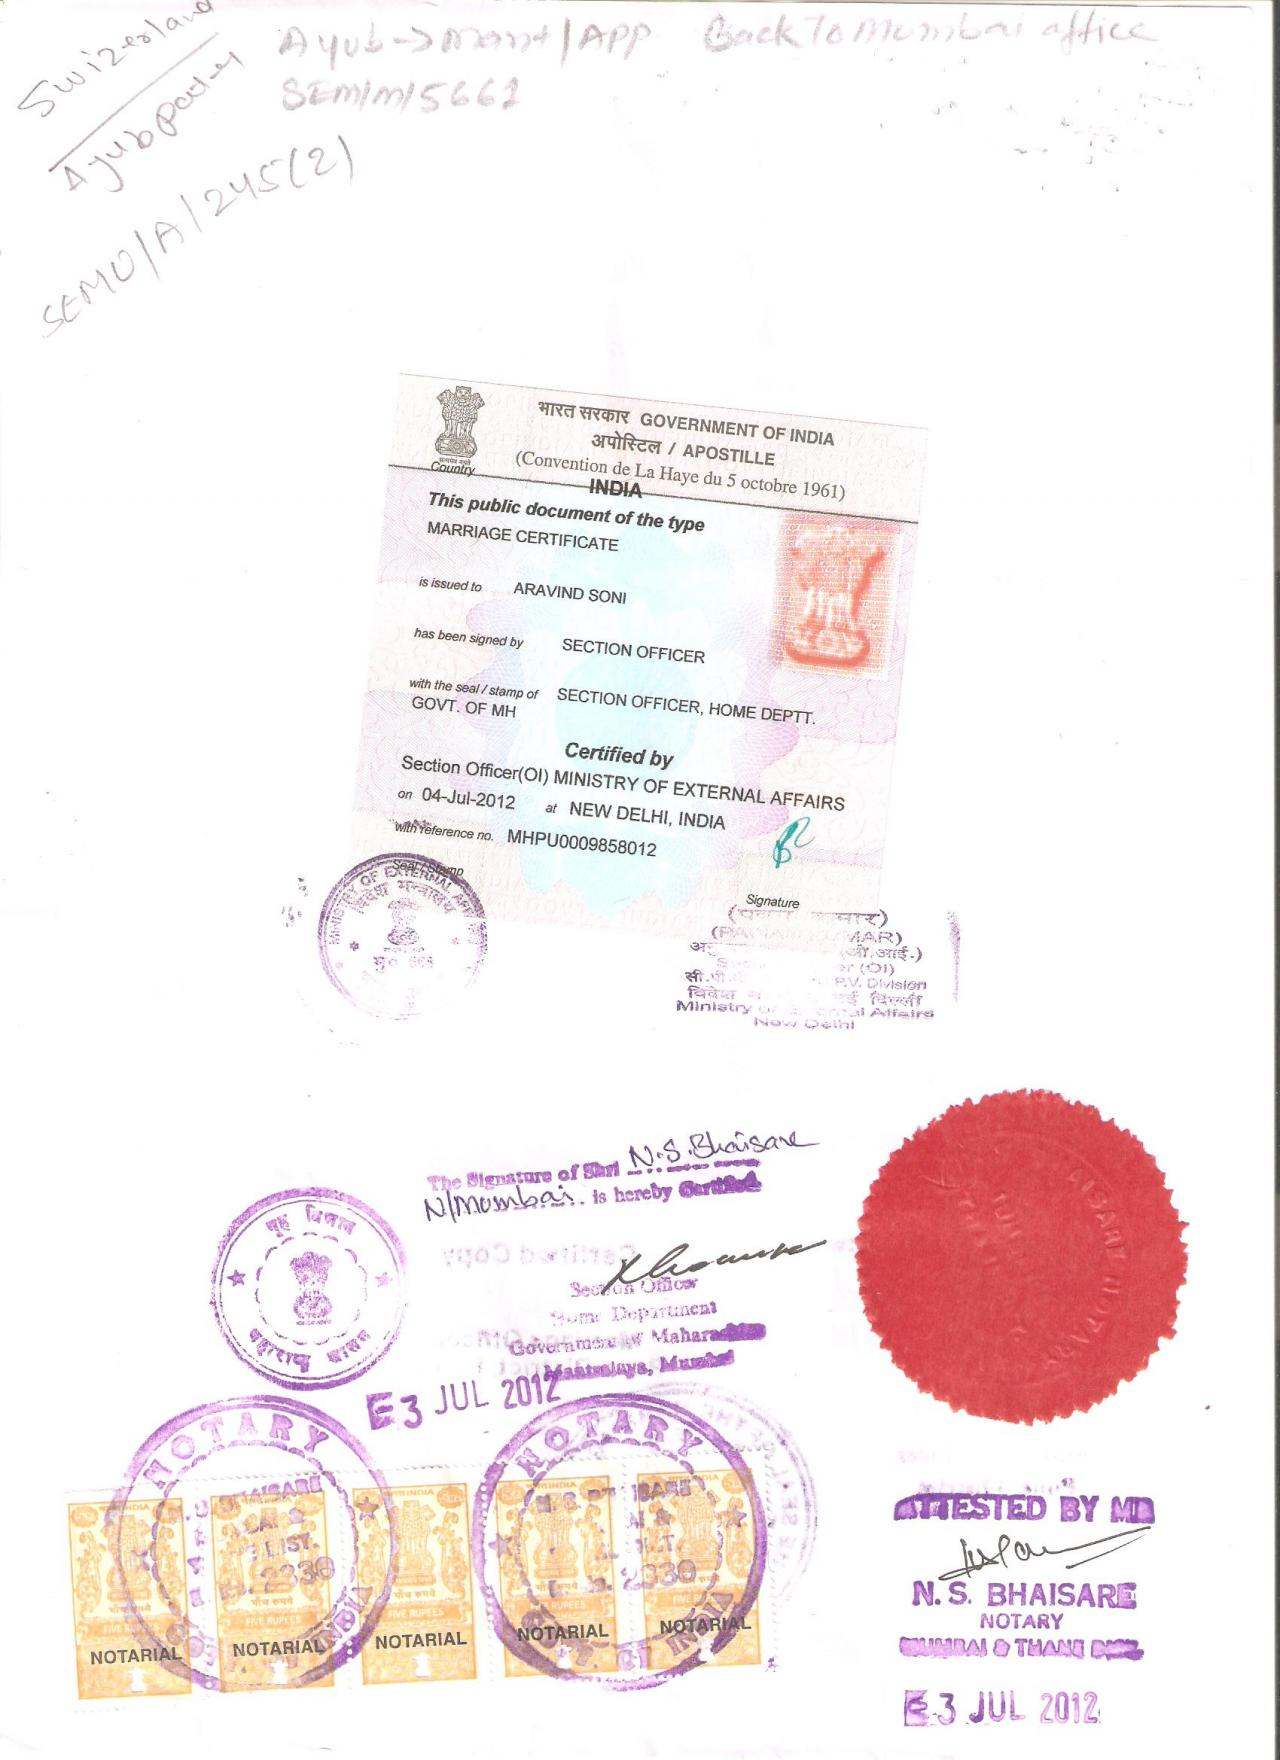 Document attestation service mea and apostille in pune india certificate attestation apostille service provider contact number for agency company from consulate and embassy in pune aiddatafo Image collections